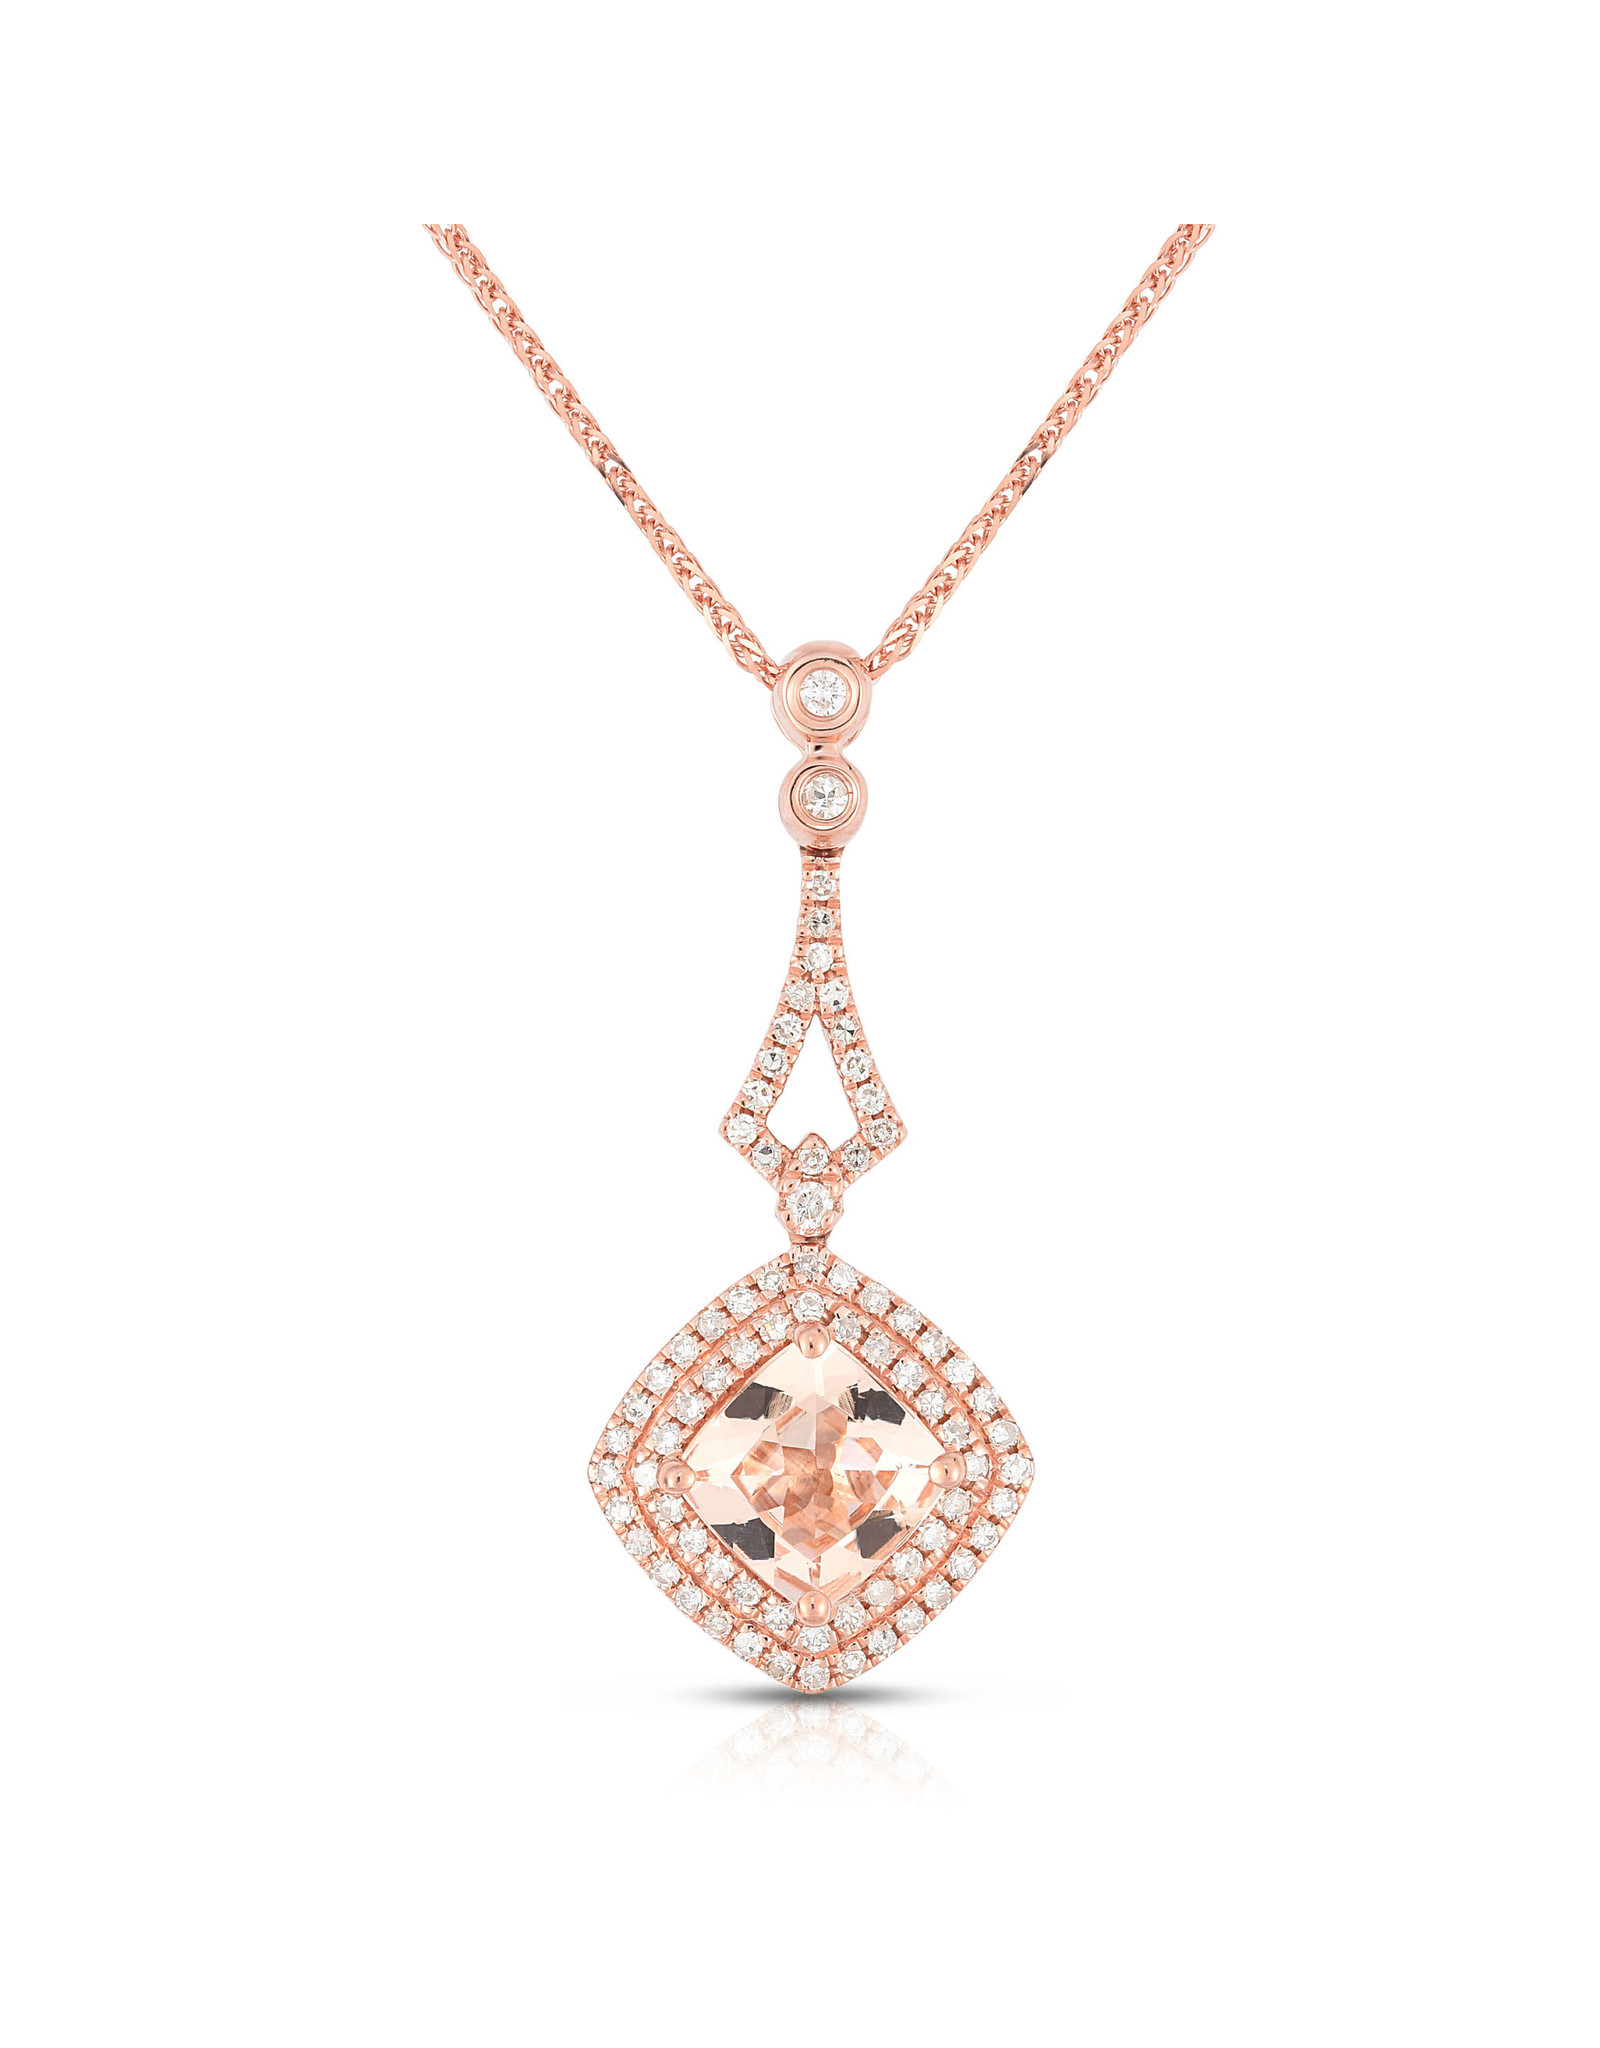 14K Rose Gold Morganite and Diamond Necklace, M: 1.31ct, D: 0.32ct